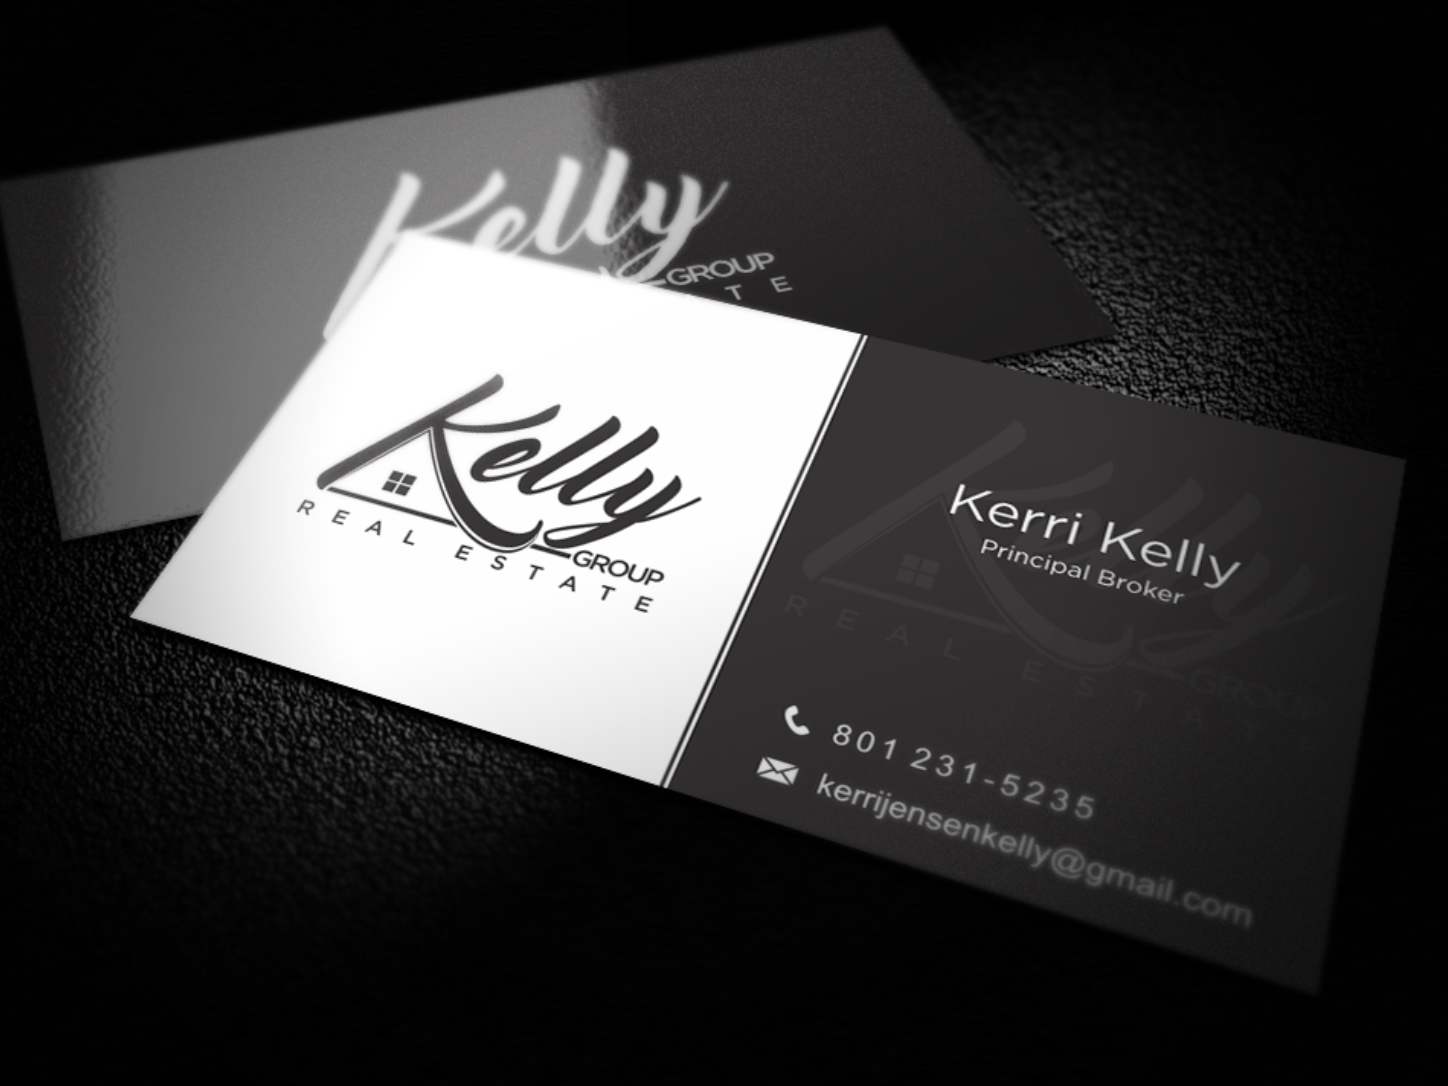 Kelly Group Real Estate business card